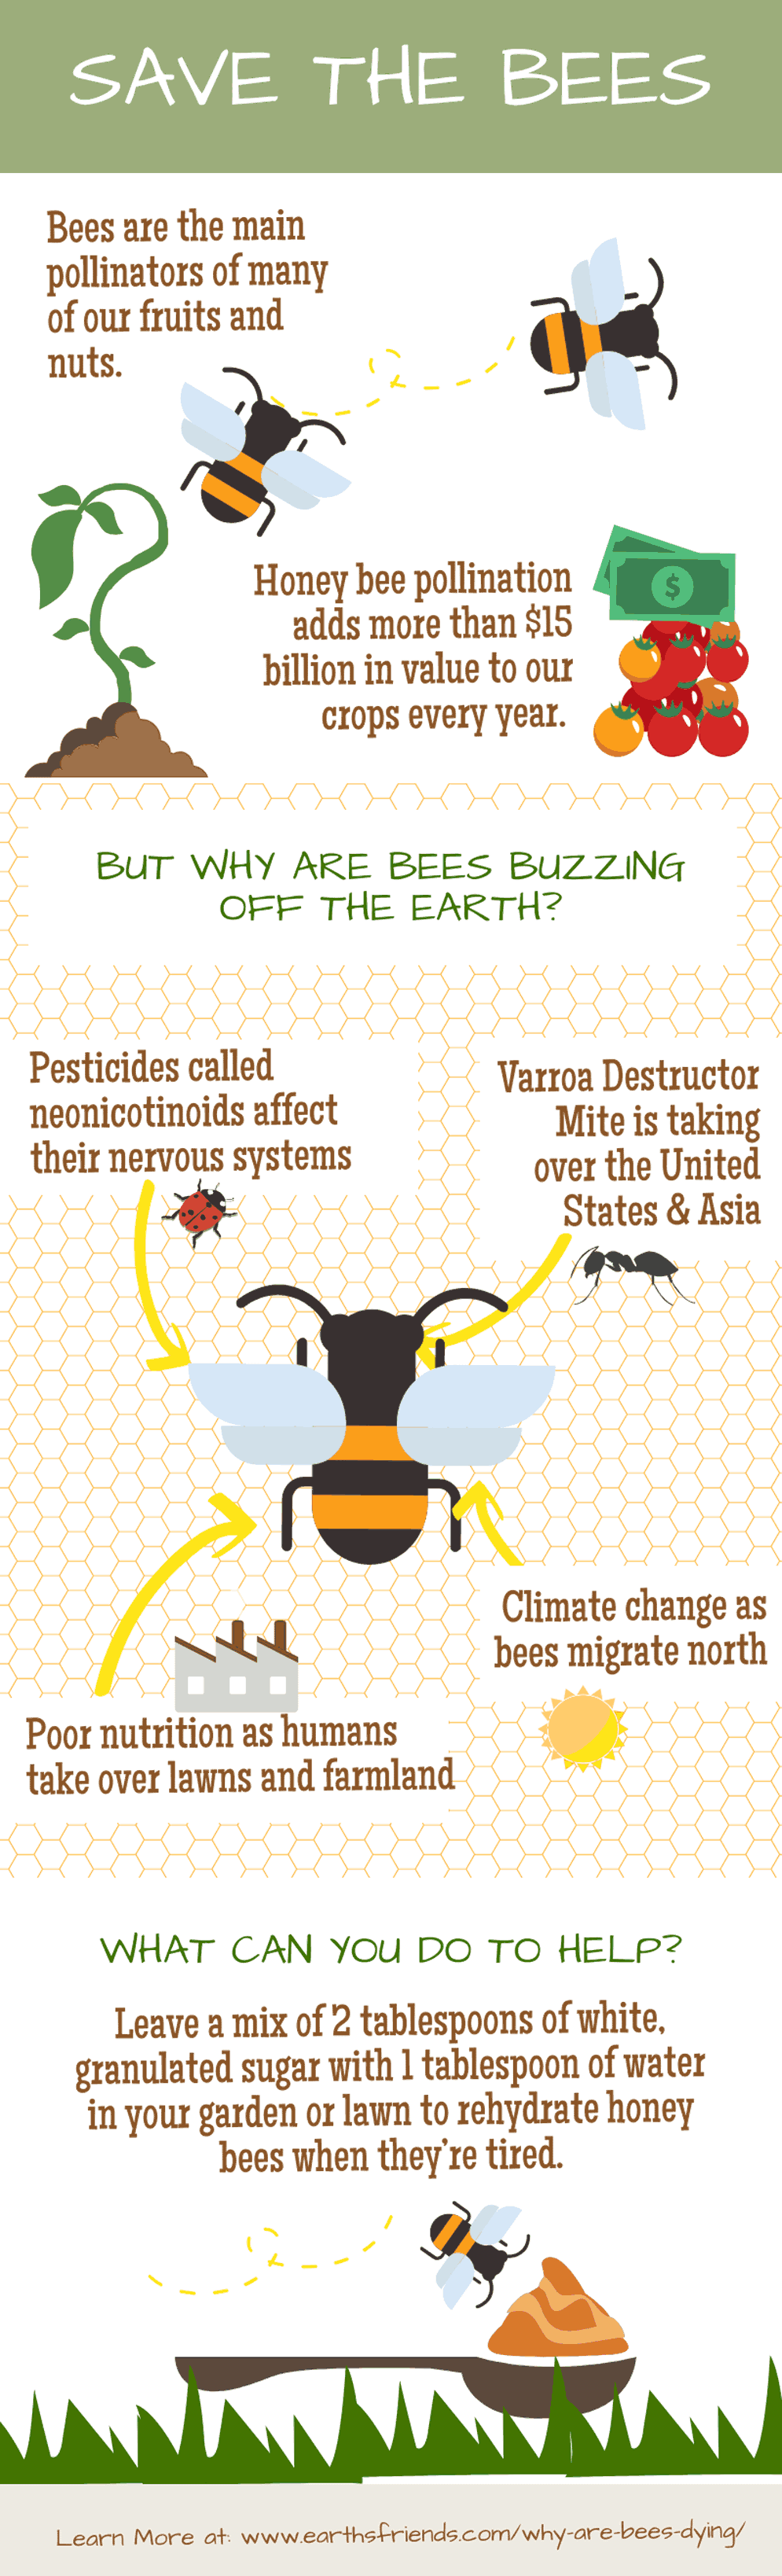 Why Are Bees Dying Infographic